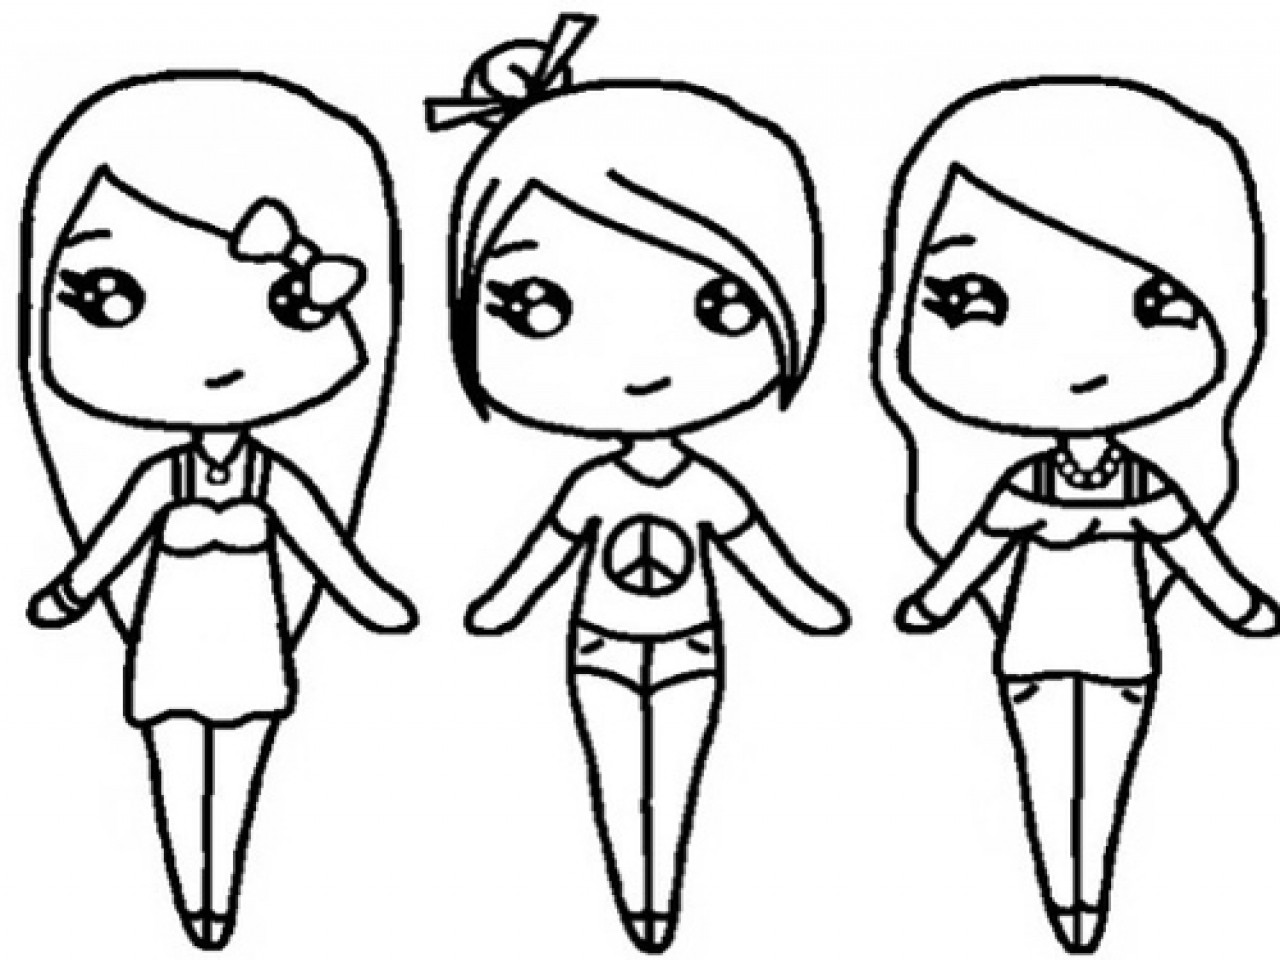 Bff Coloring Sheets For Girls  Bff Coloring Pages For Girls Best Friend Chibi Stencils